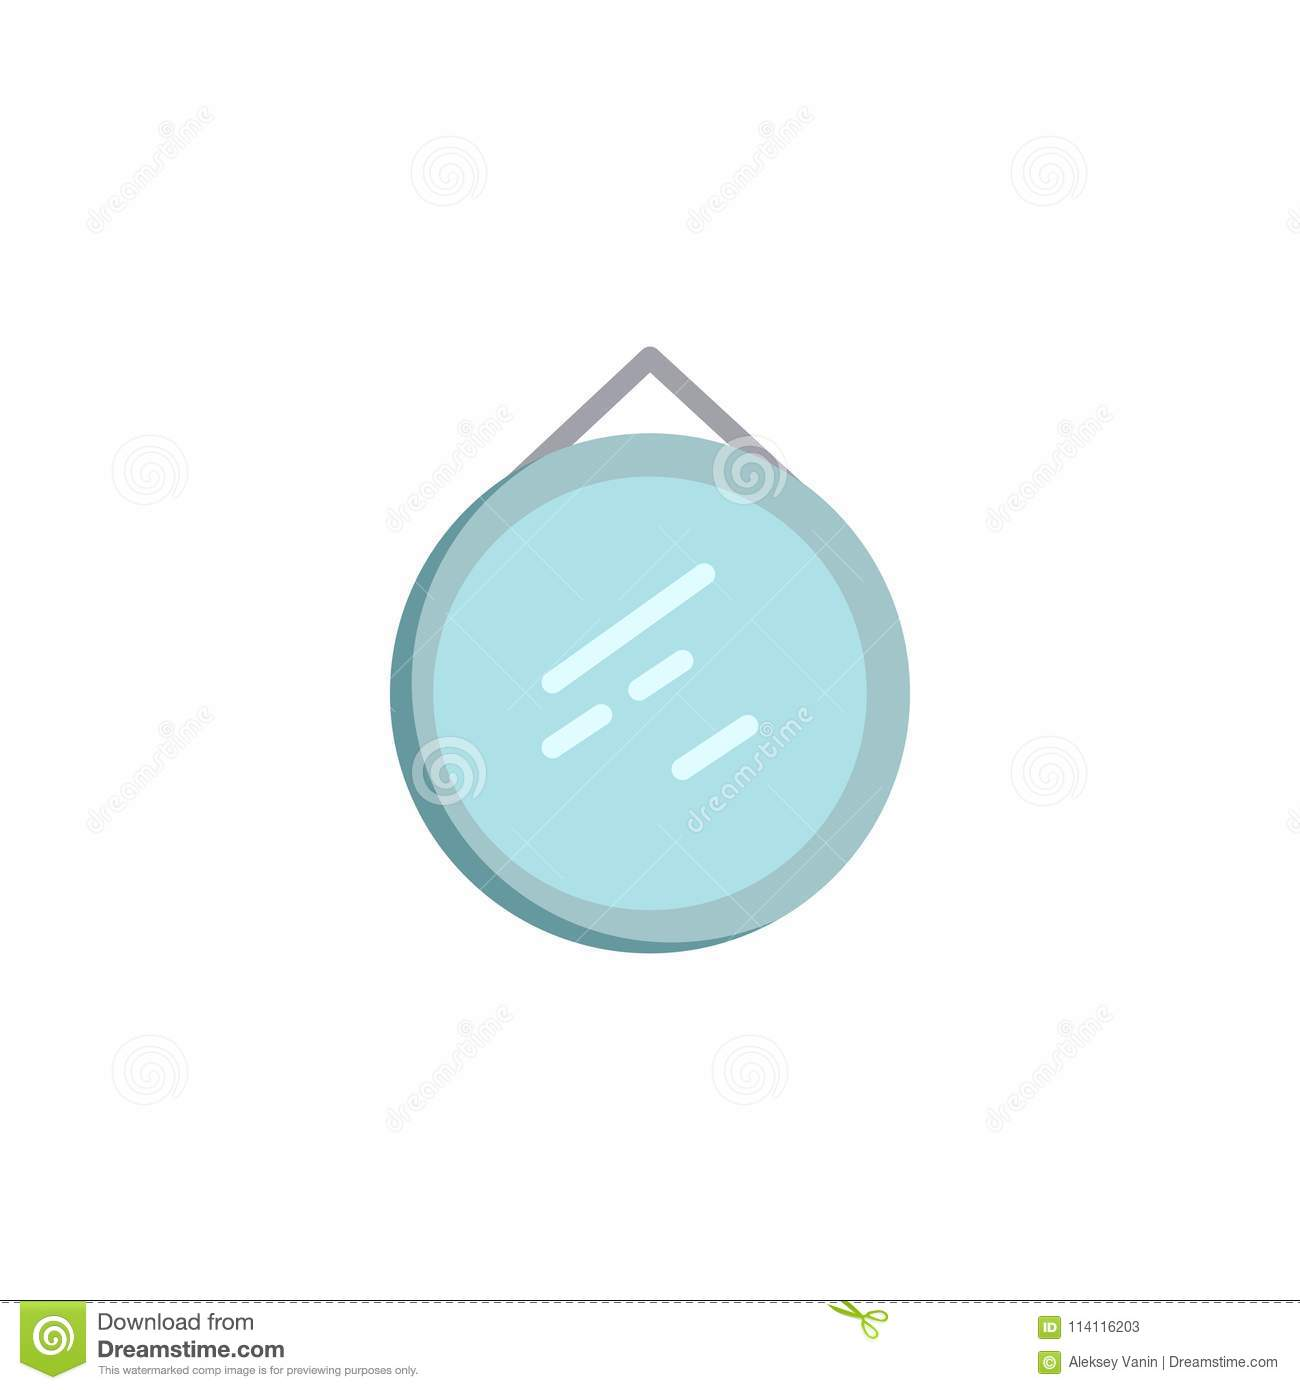 Circle Wall Mirror Flat Icon Stock Vector Illustration Of